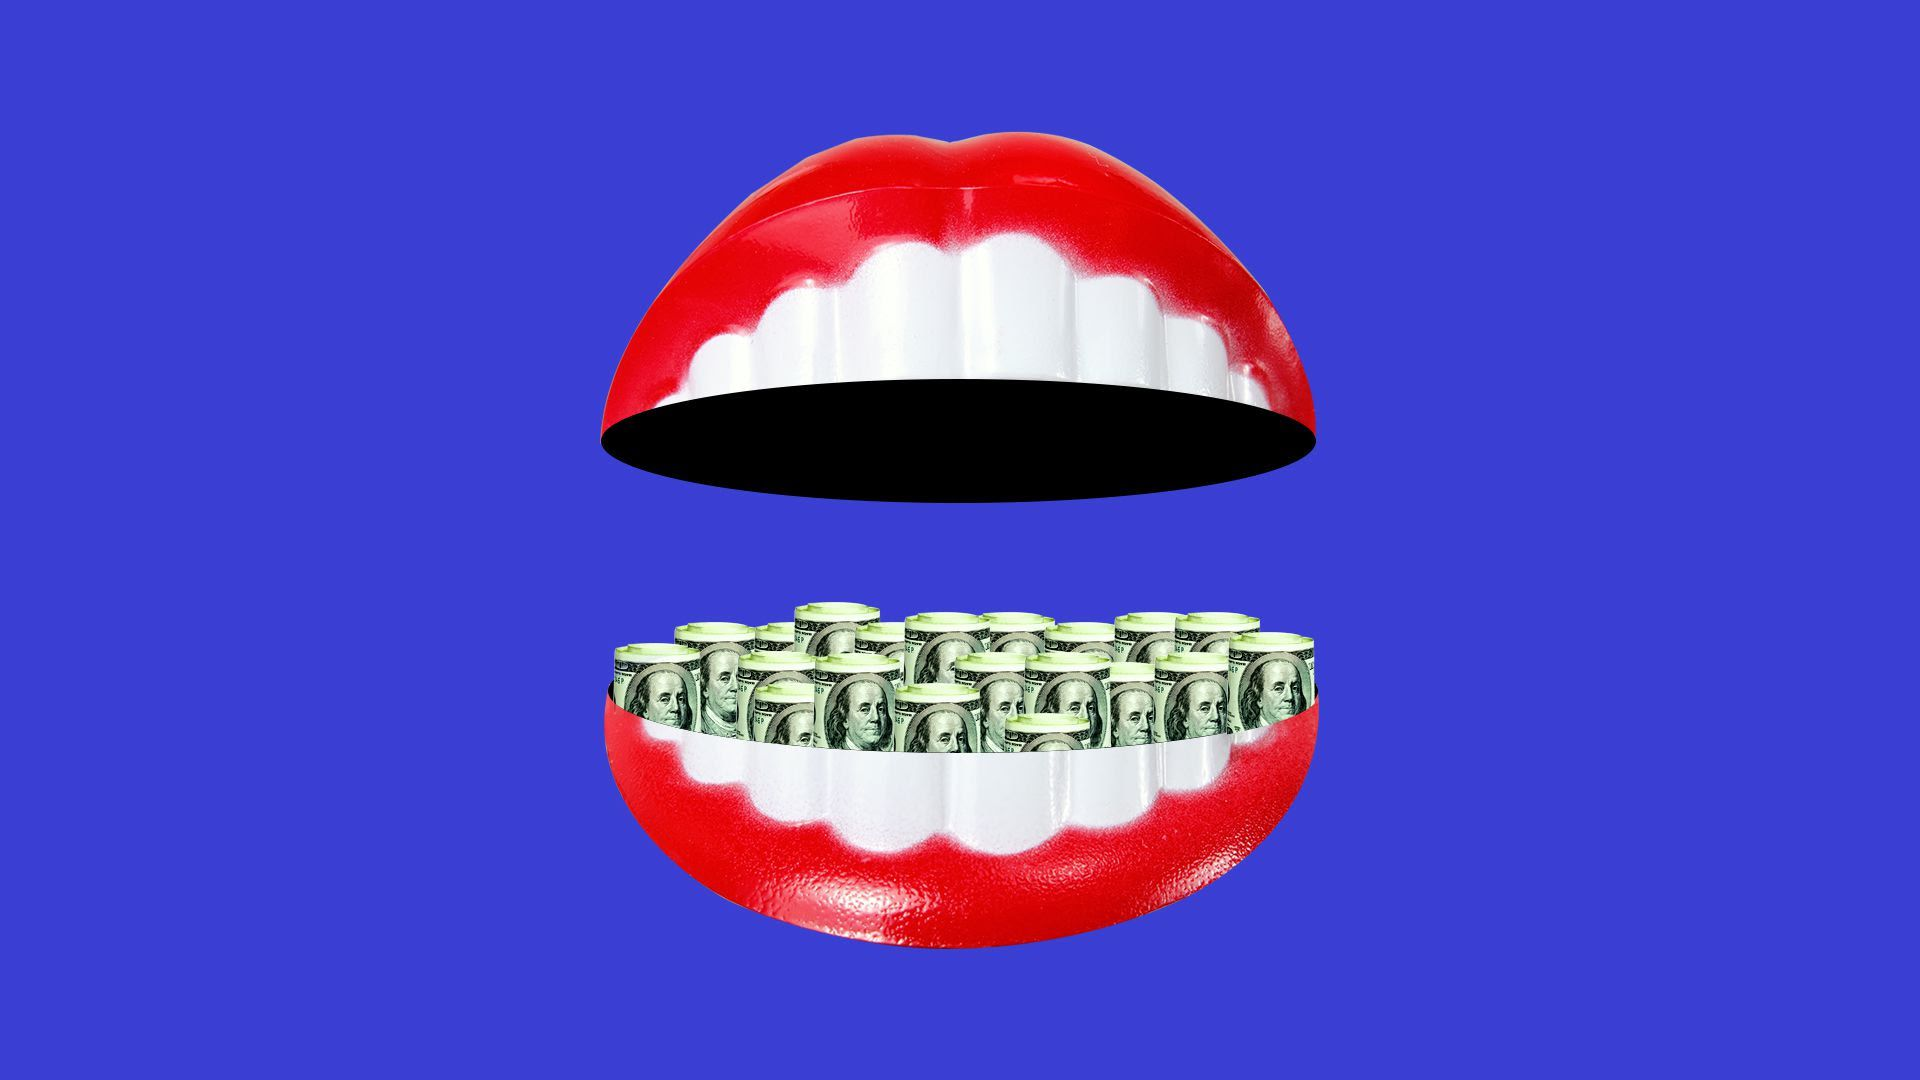 Illustration of dentures with dollar bills rolled up in it